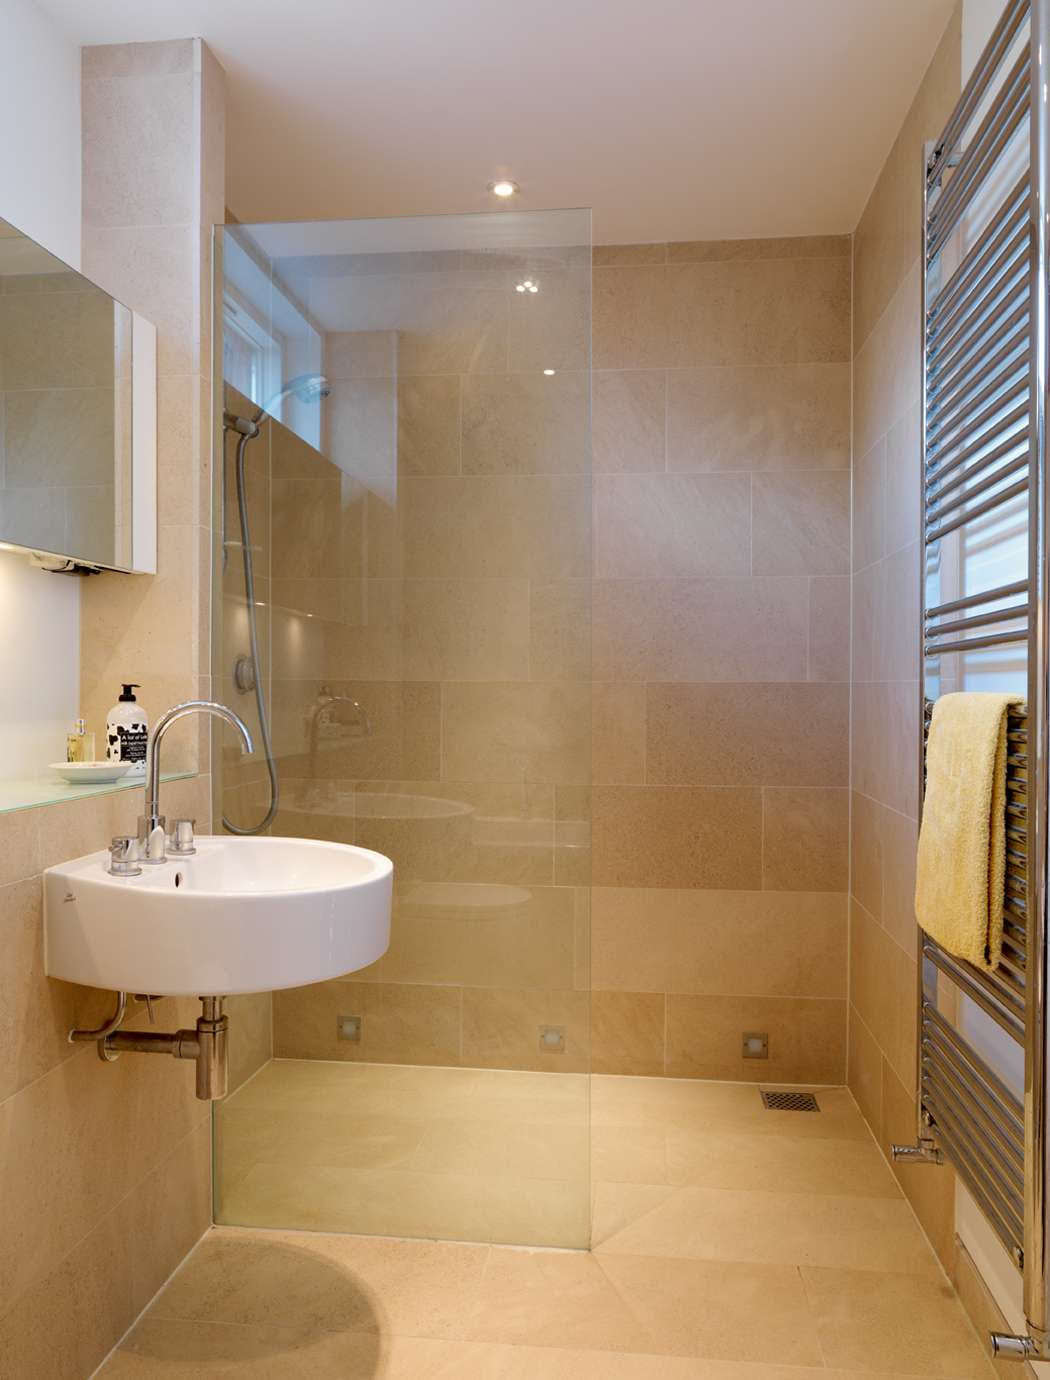 Stylish Small Bathroom Design Ideas for a Space-Efficient ...